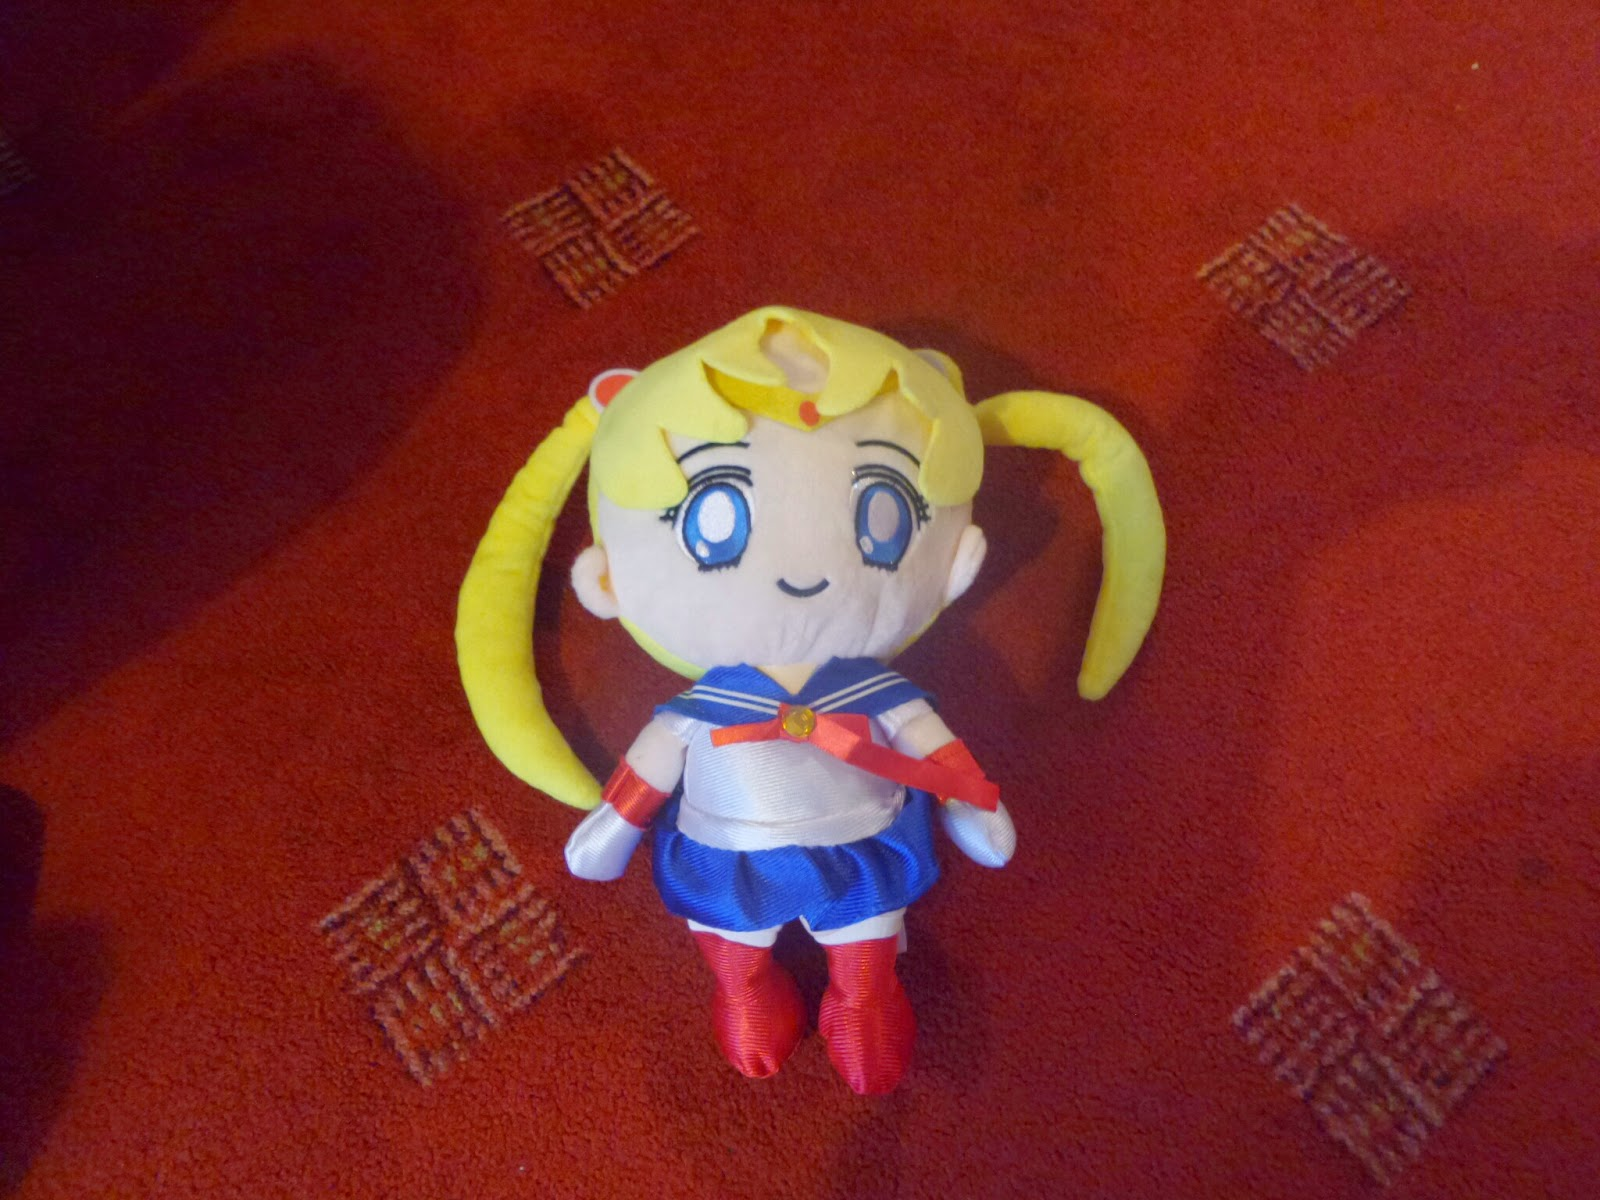 Top Ender's Sailor Moon Plush